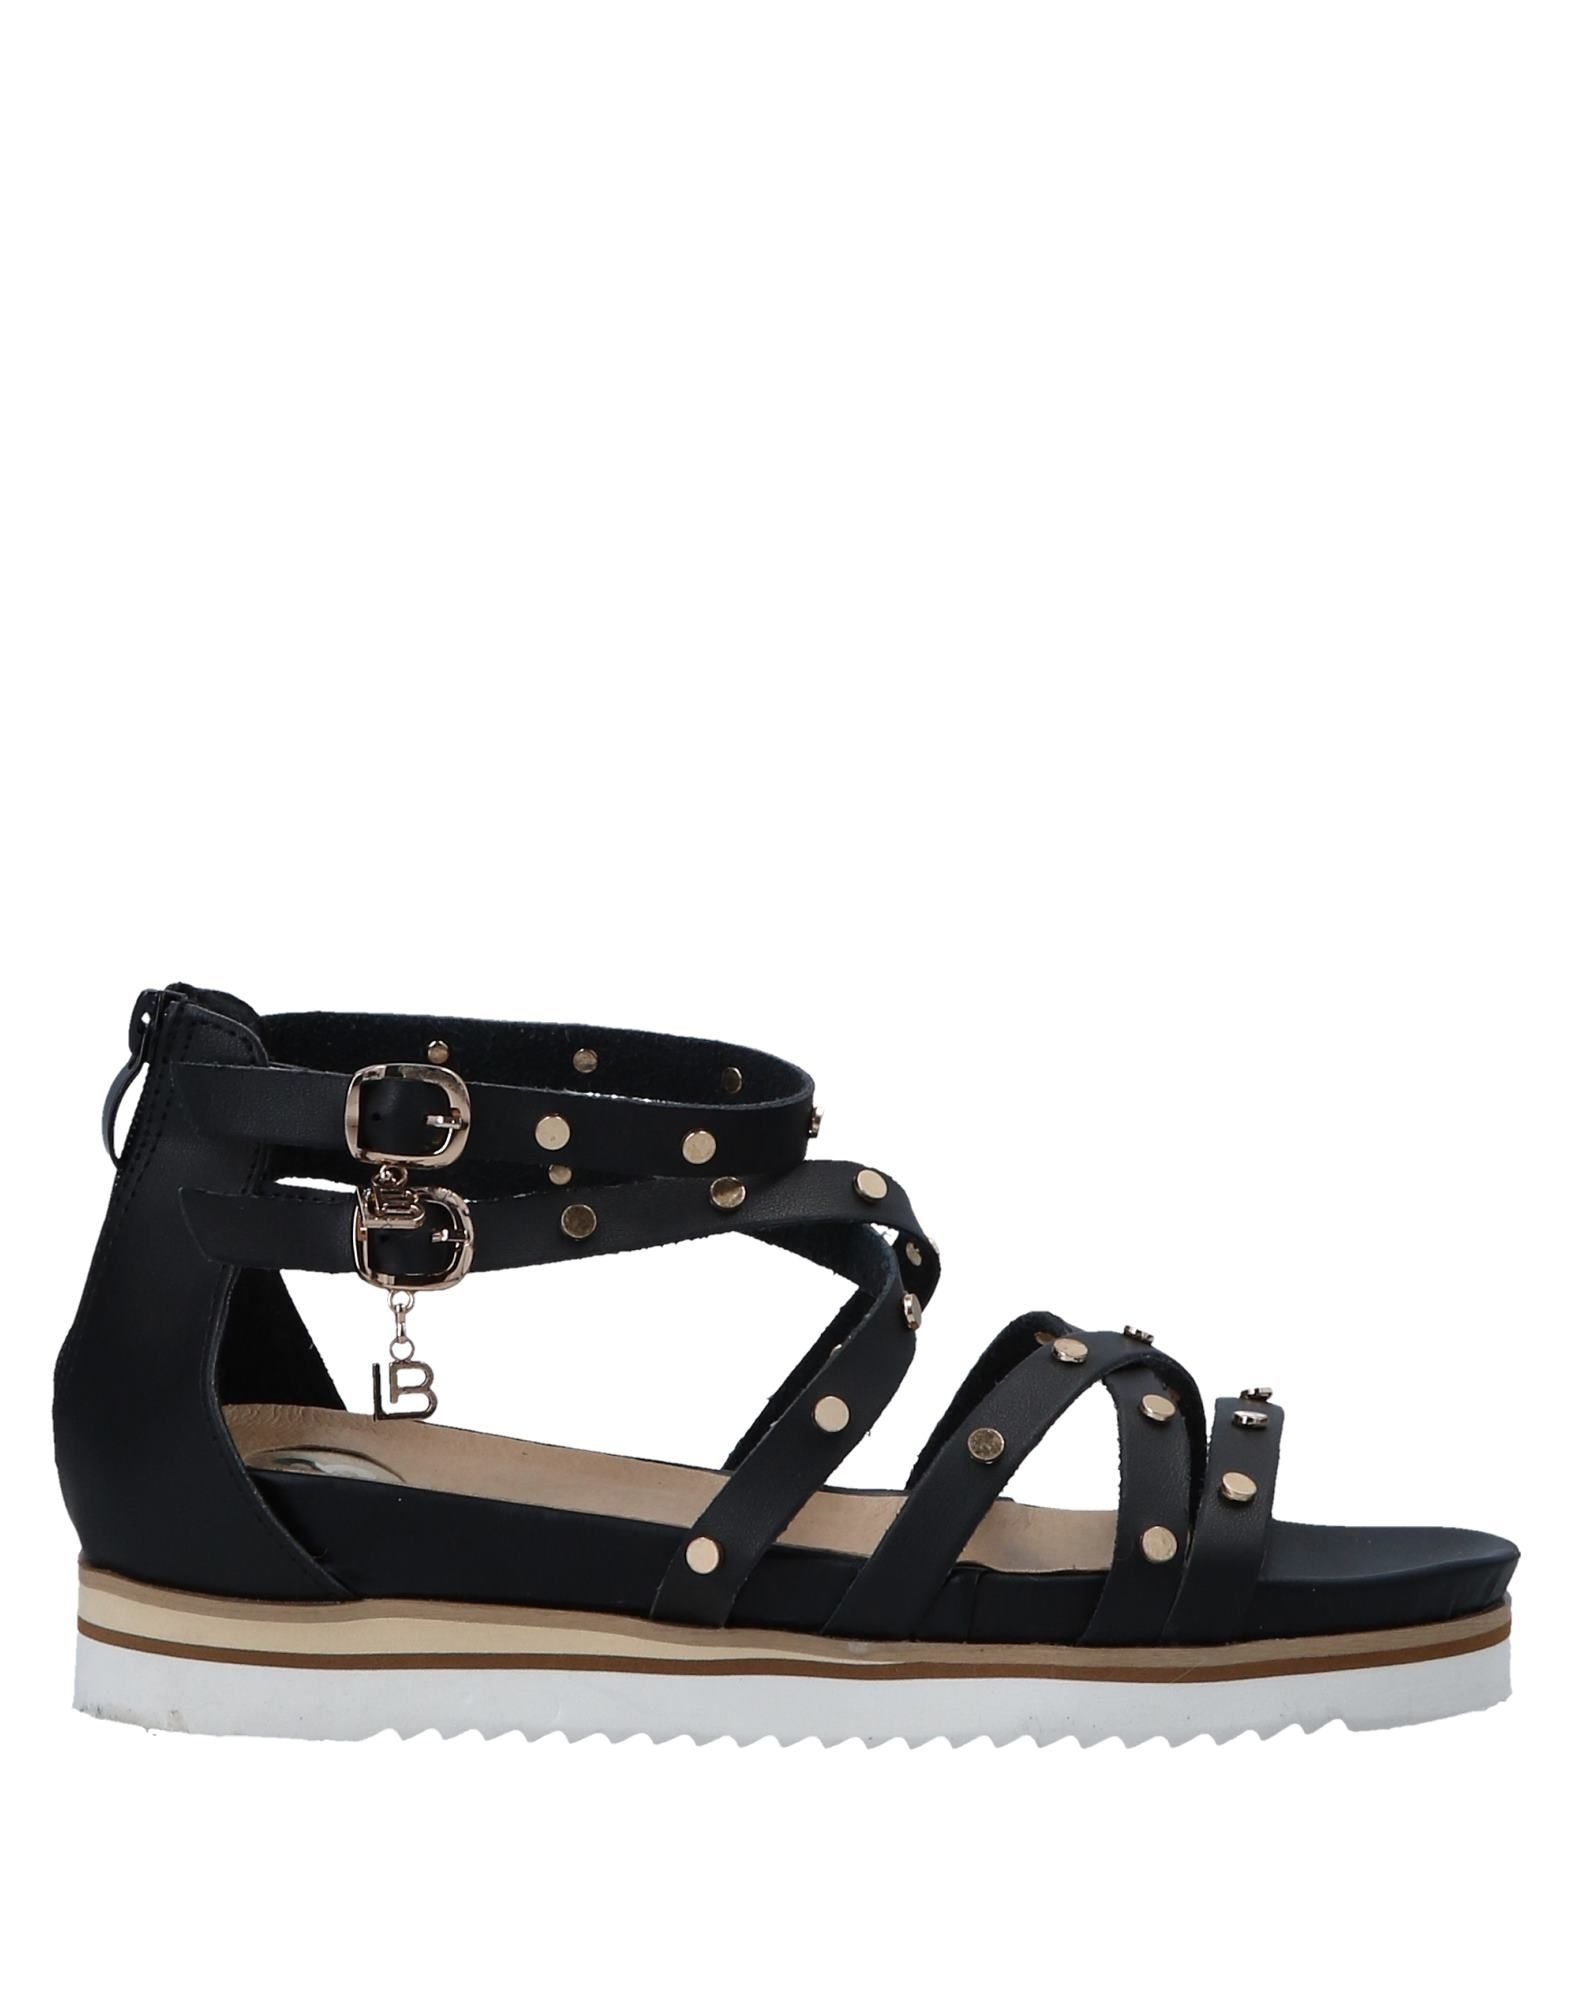 Laura Biagiotti Sandals - Women Biagiotti Laura Biagiotti Women Sandals online on  Canada - 11556525KH b417a9